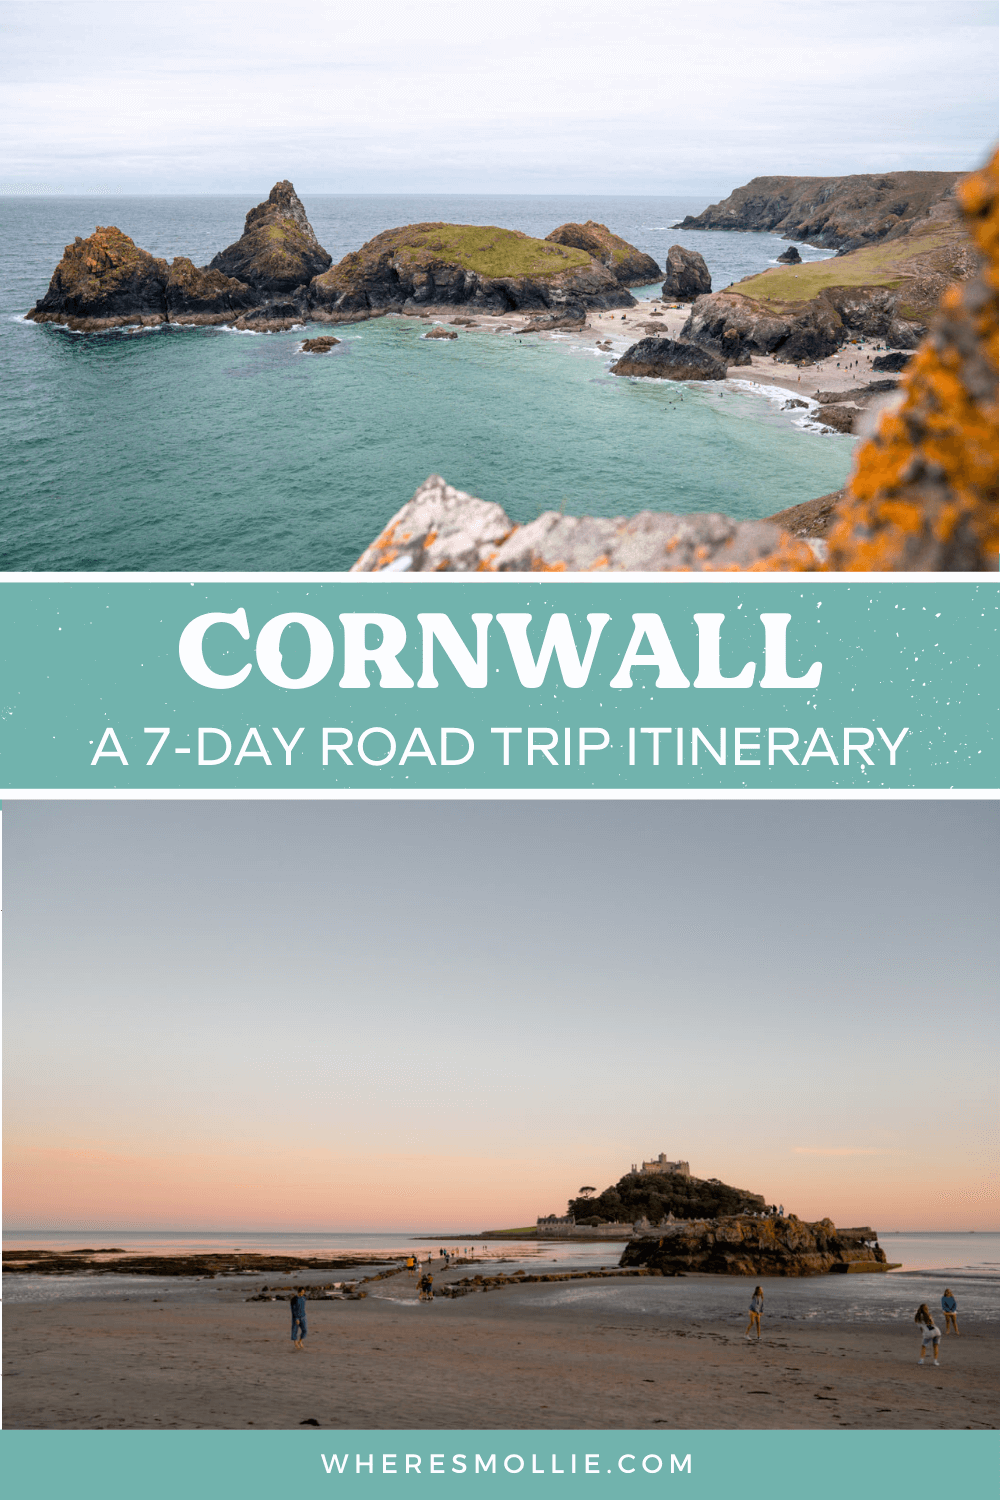 A 1-week road trip itinerary for Cornwall